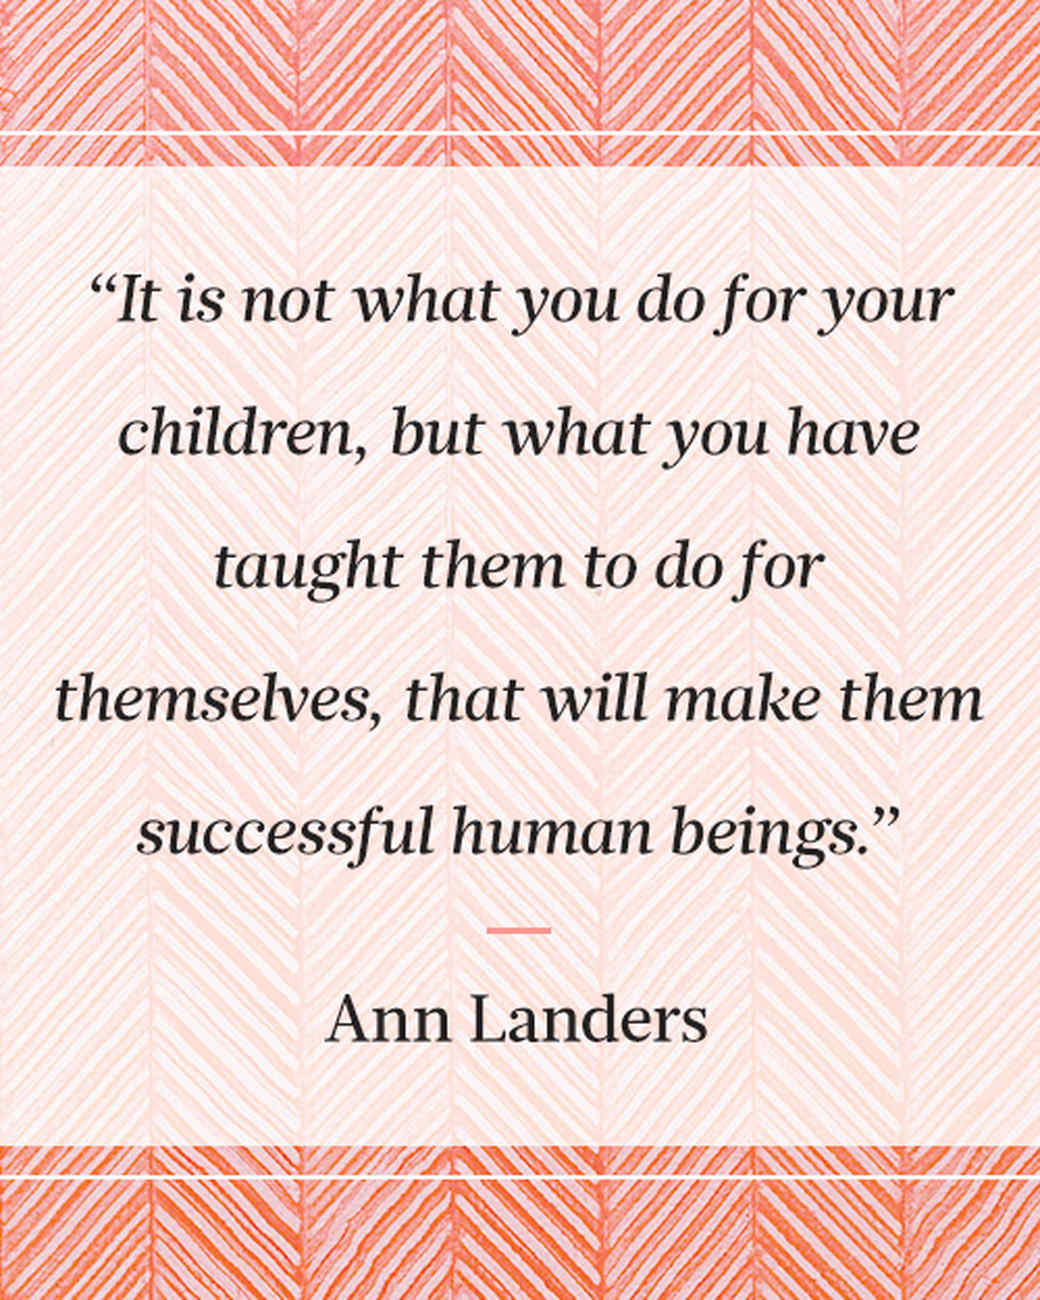 mothersdayquotes10-0315.jpg